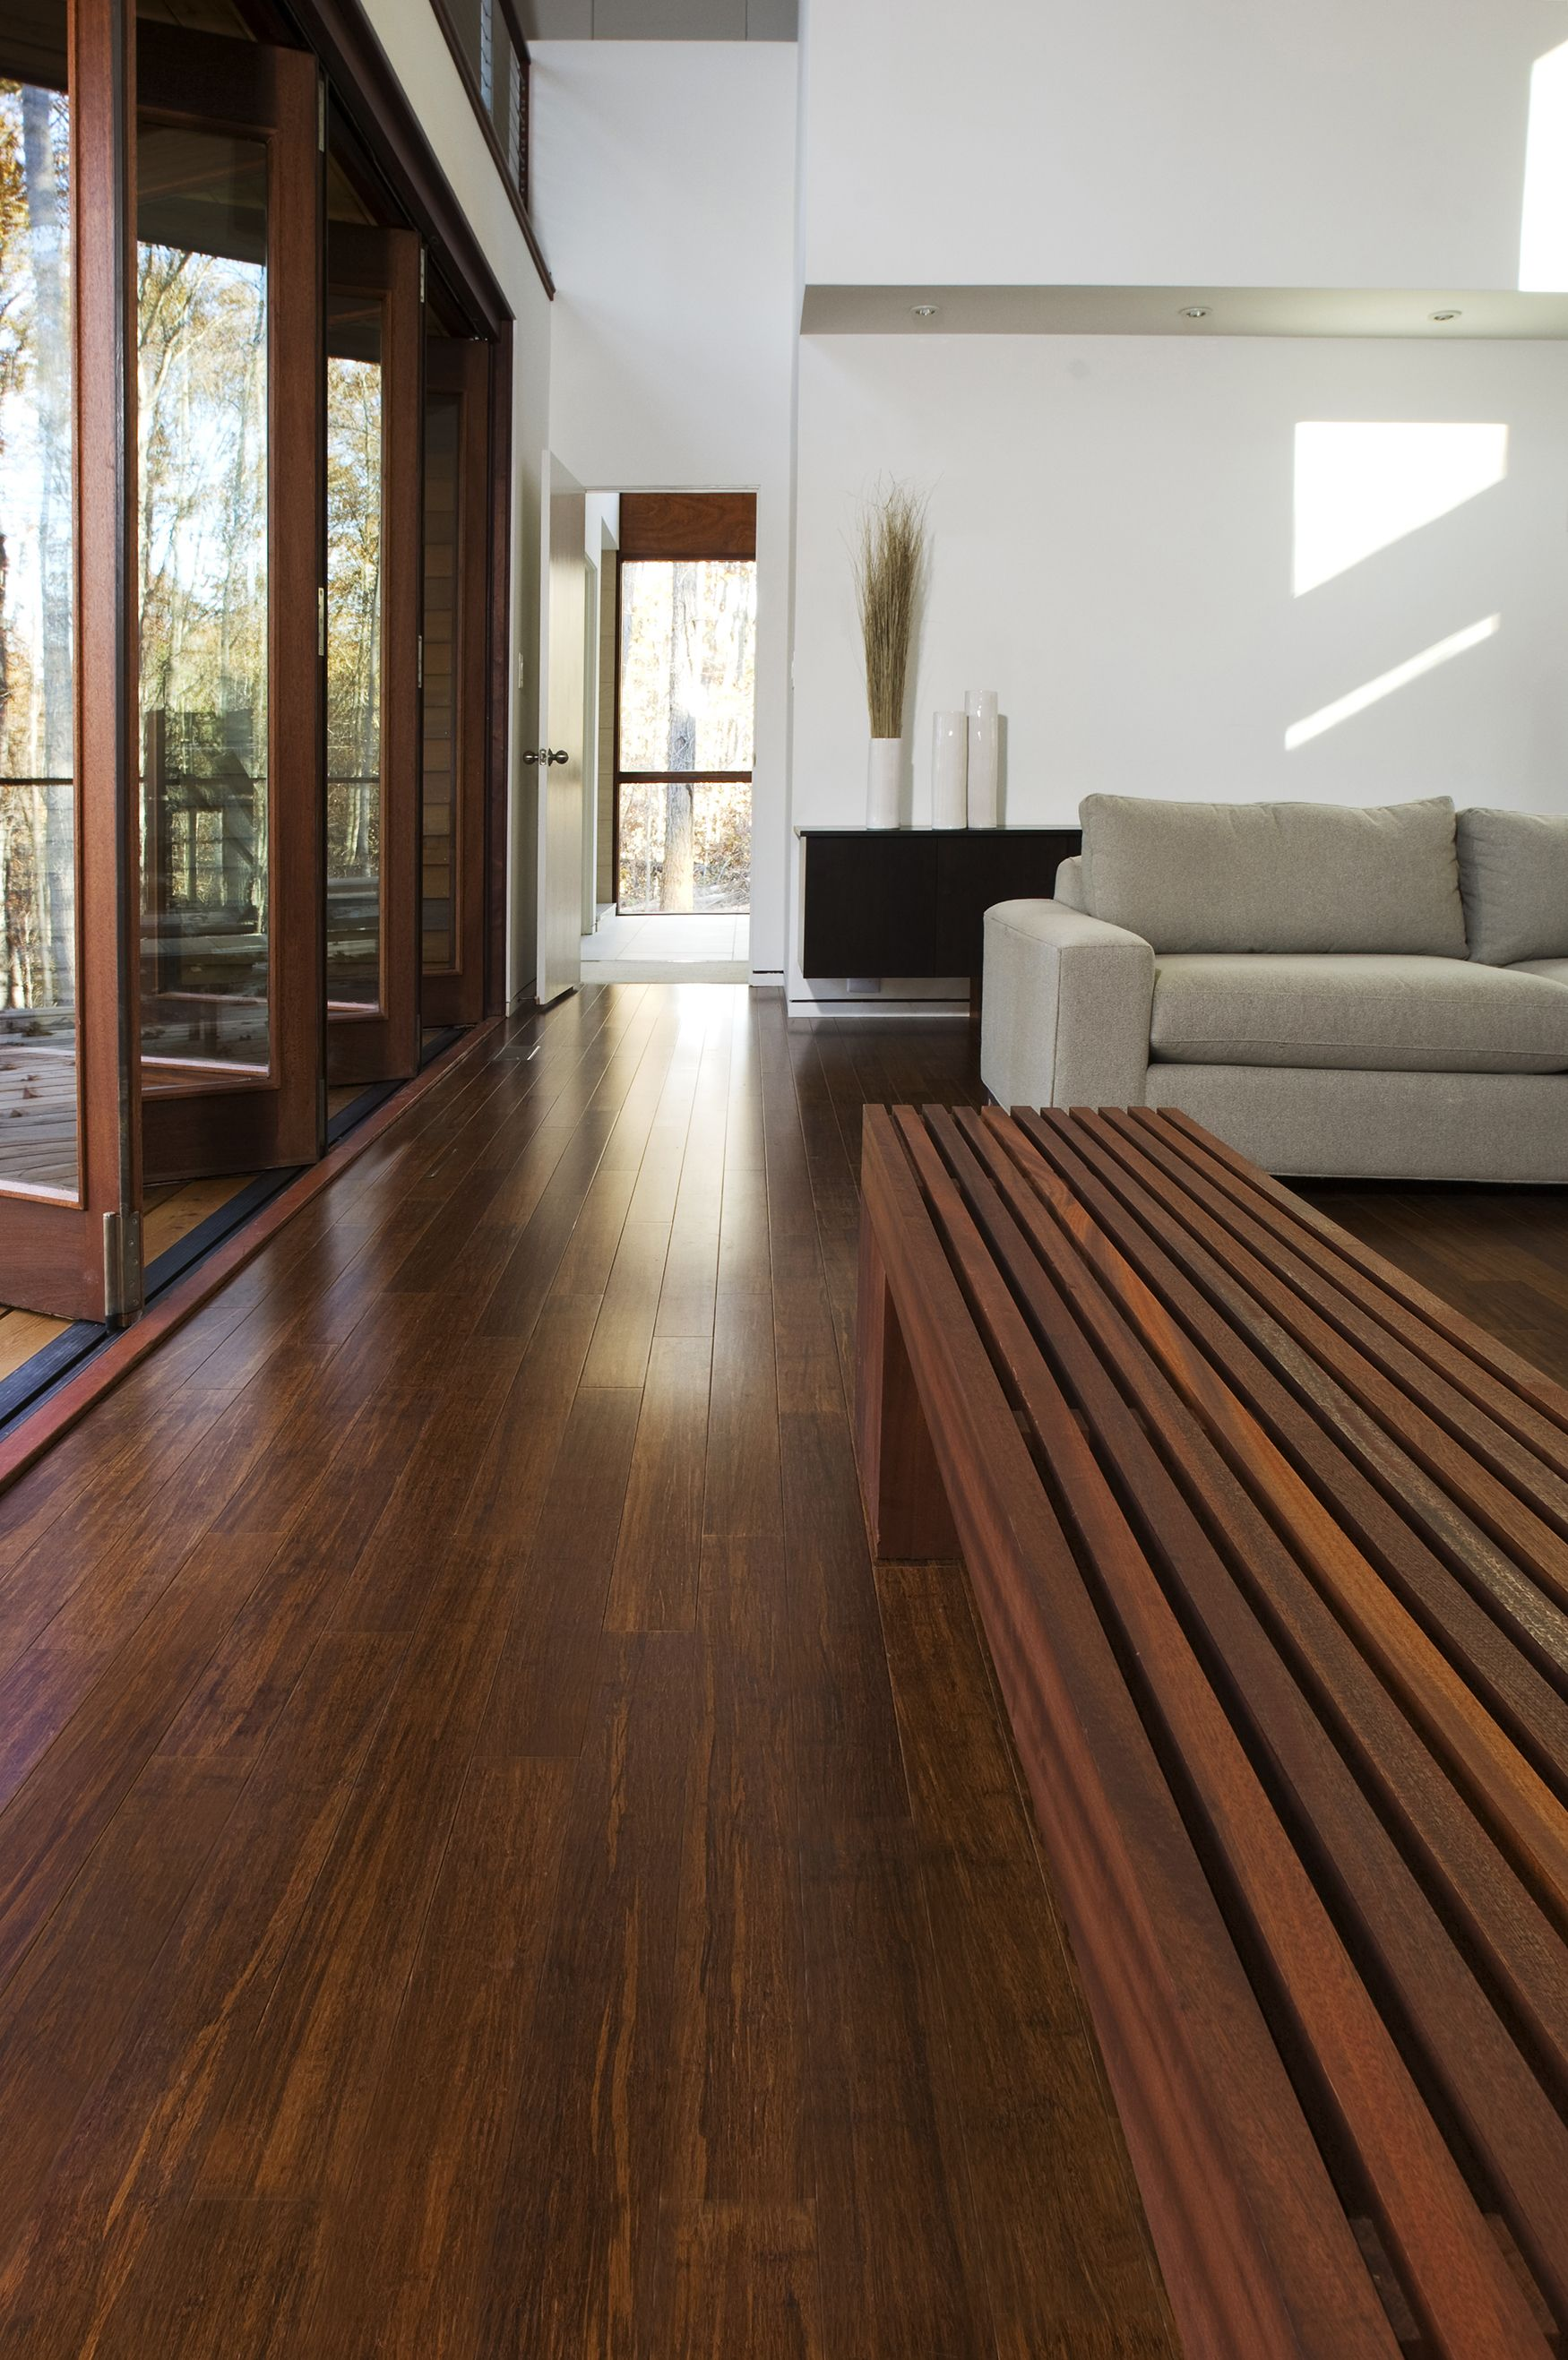 Strand Bamboo Flooring at Dwell House by Alex Maness